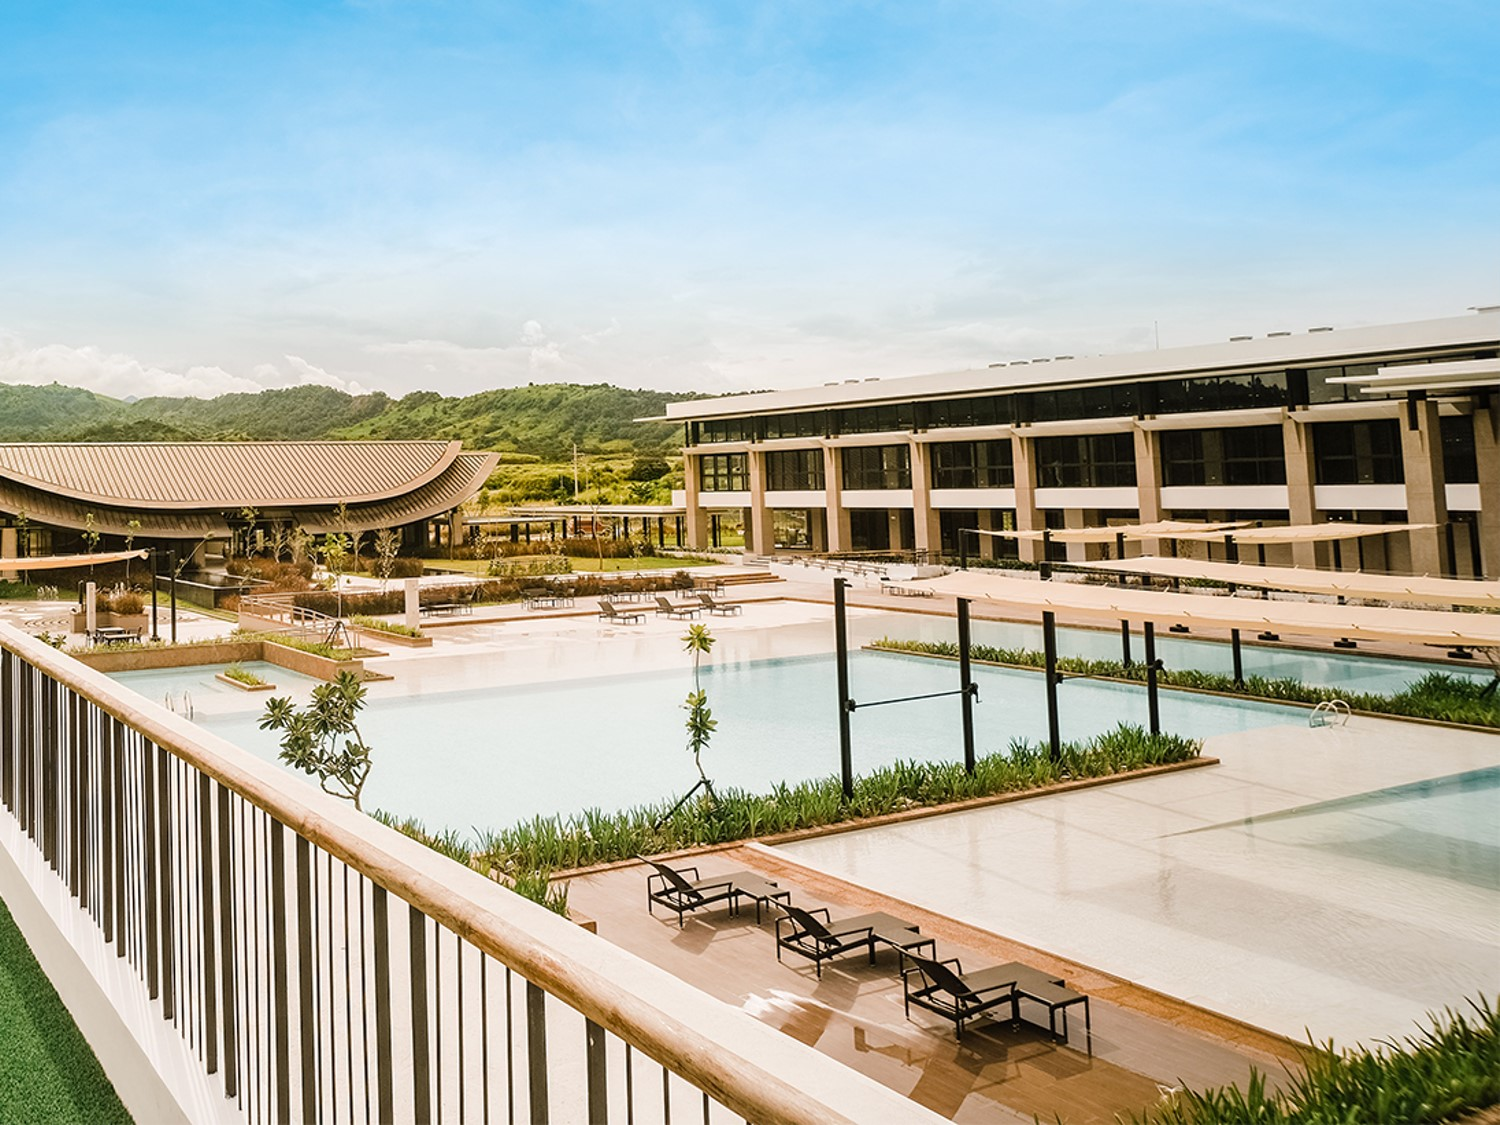 This country club in Pampanga will give you that well-deserved (and safe) getaway